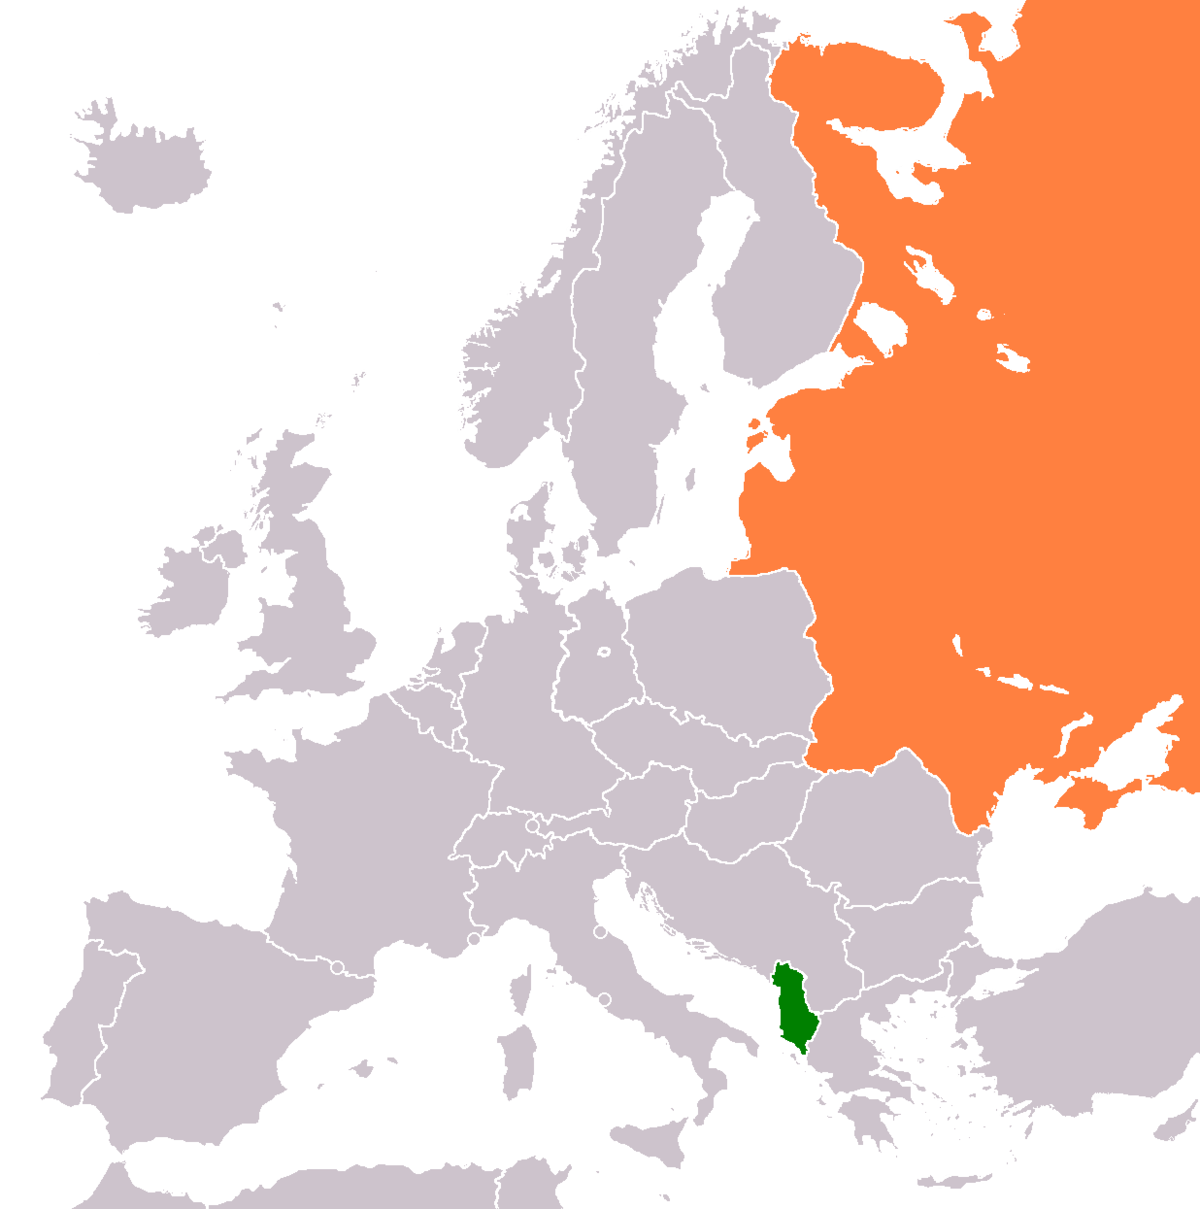 Does Poland Use Roman Letters